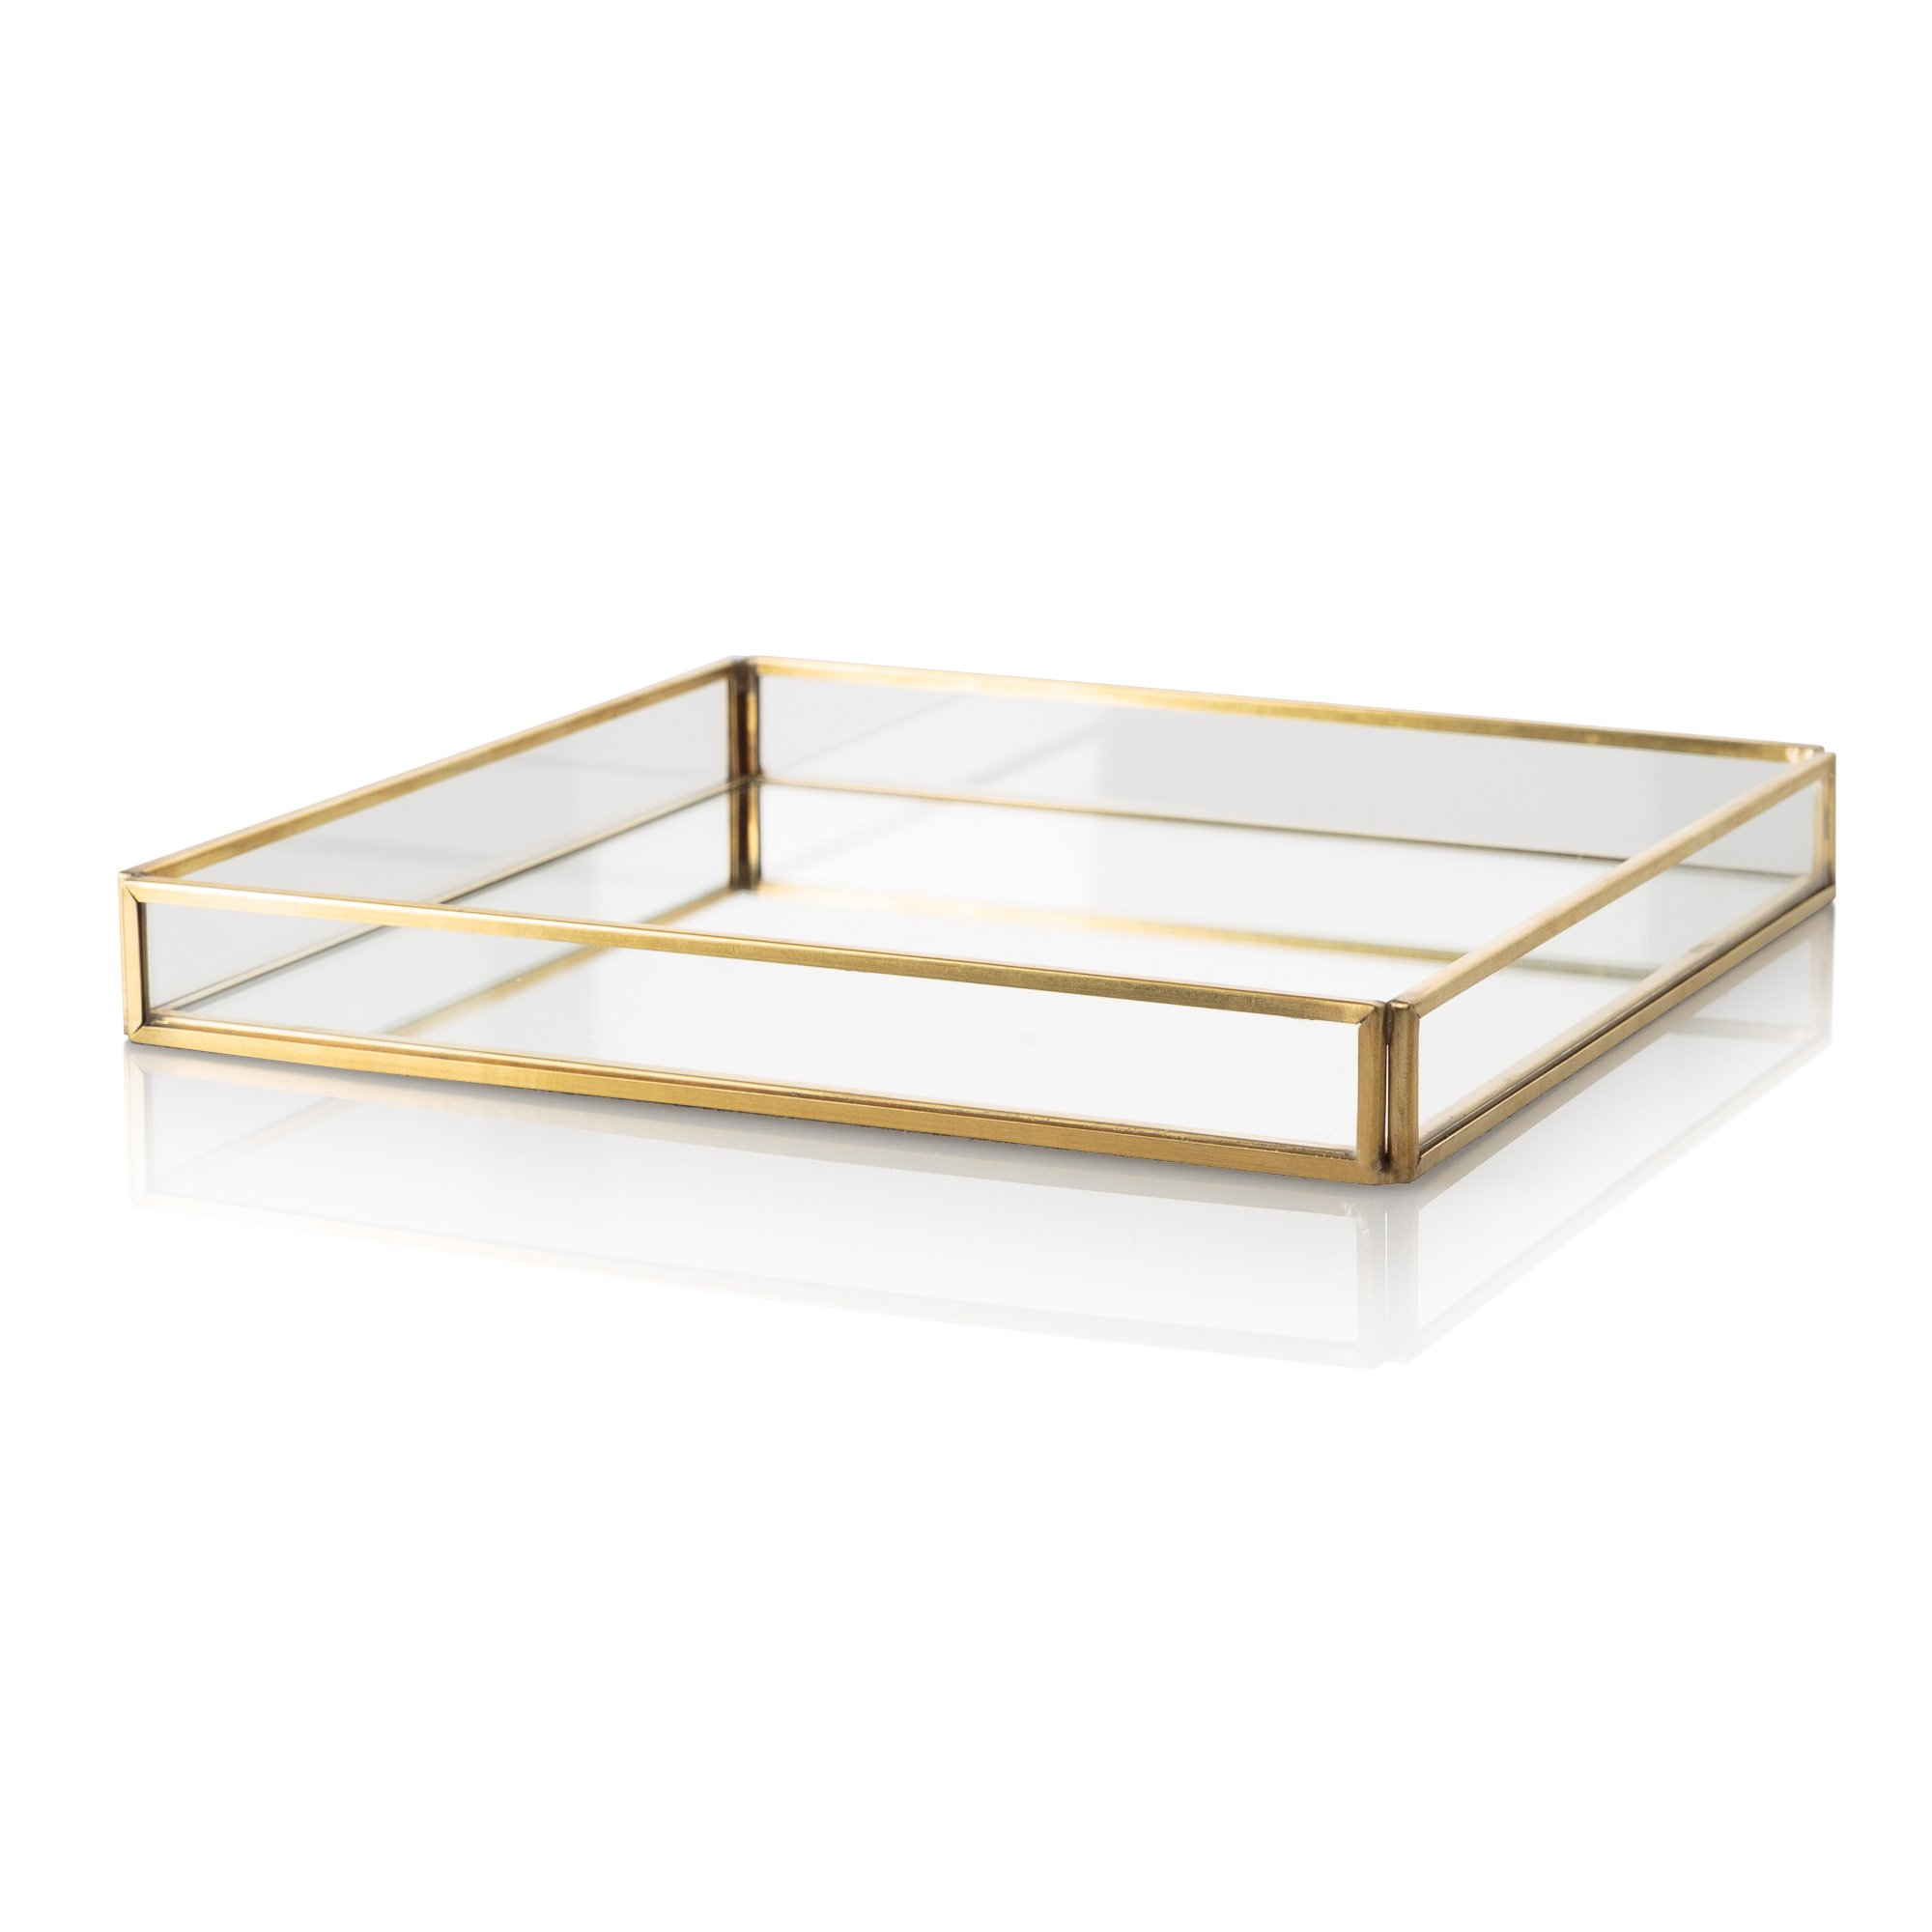 Gold Glass Mirrored Tray Oliver Bonas